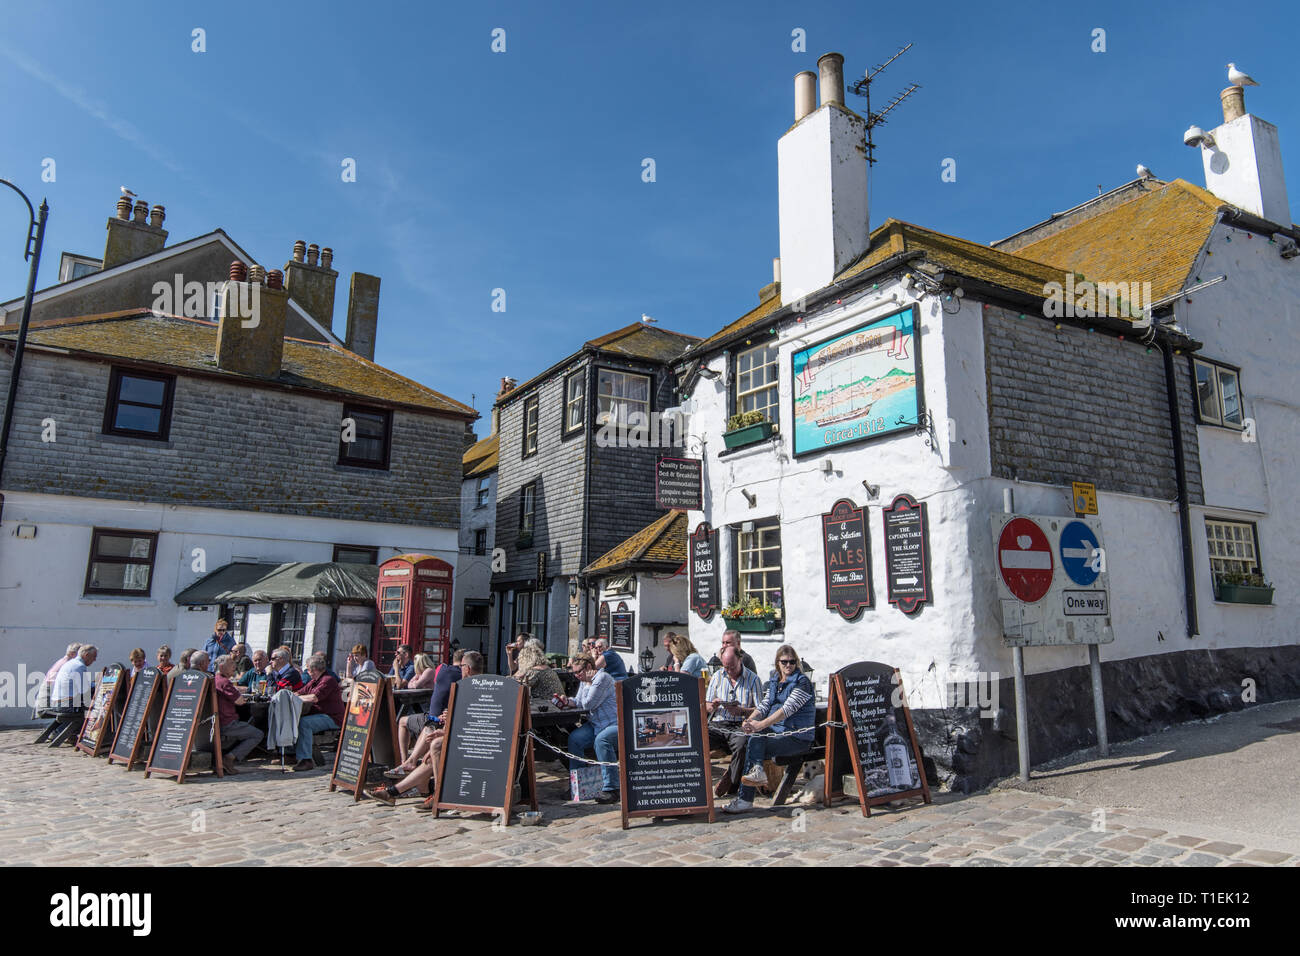 St Ives, Cornwall, UK. 26th Mar, 2019. UK Weather. It was a hot and sunny afternoon on the coast at St Ives in Cornwall today. People were making the most of the weather having a pint outside the famous Sloop Inn. Credit: Simon Maycock/Alamy Live News - Stock Image